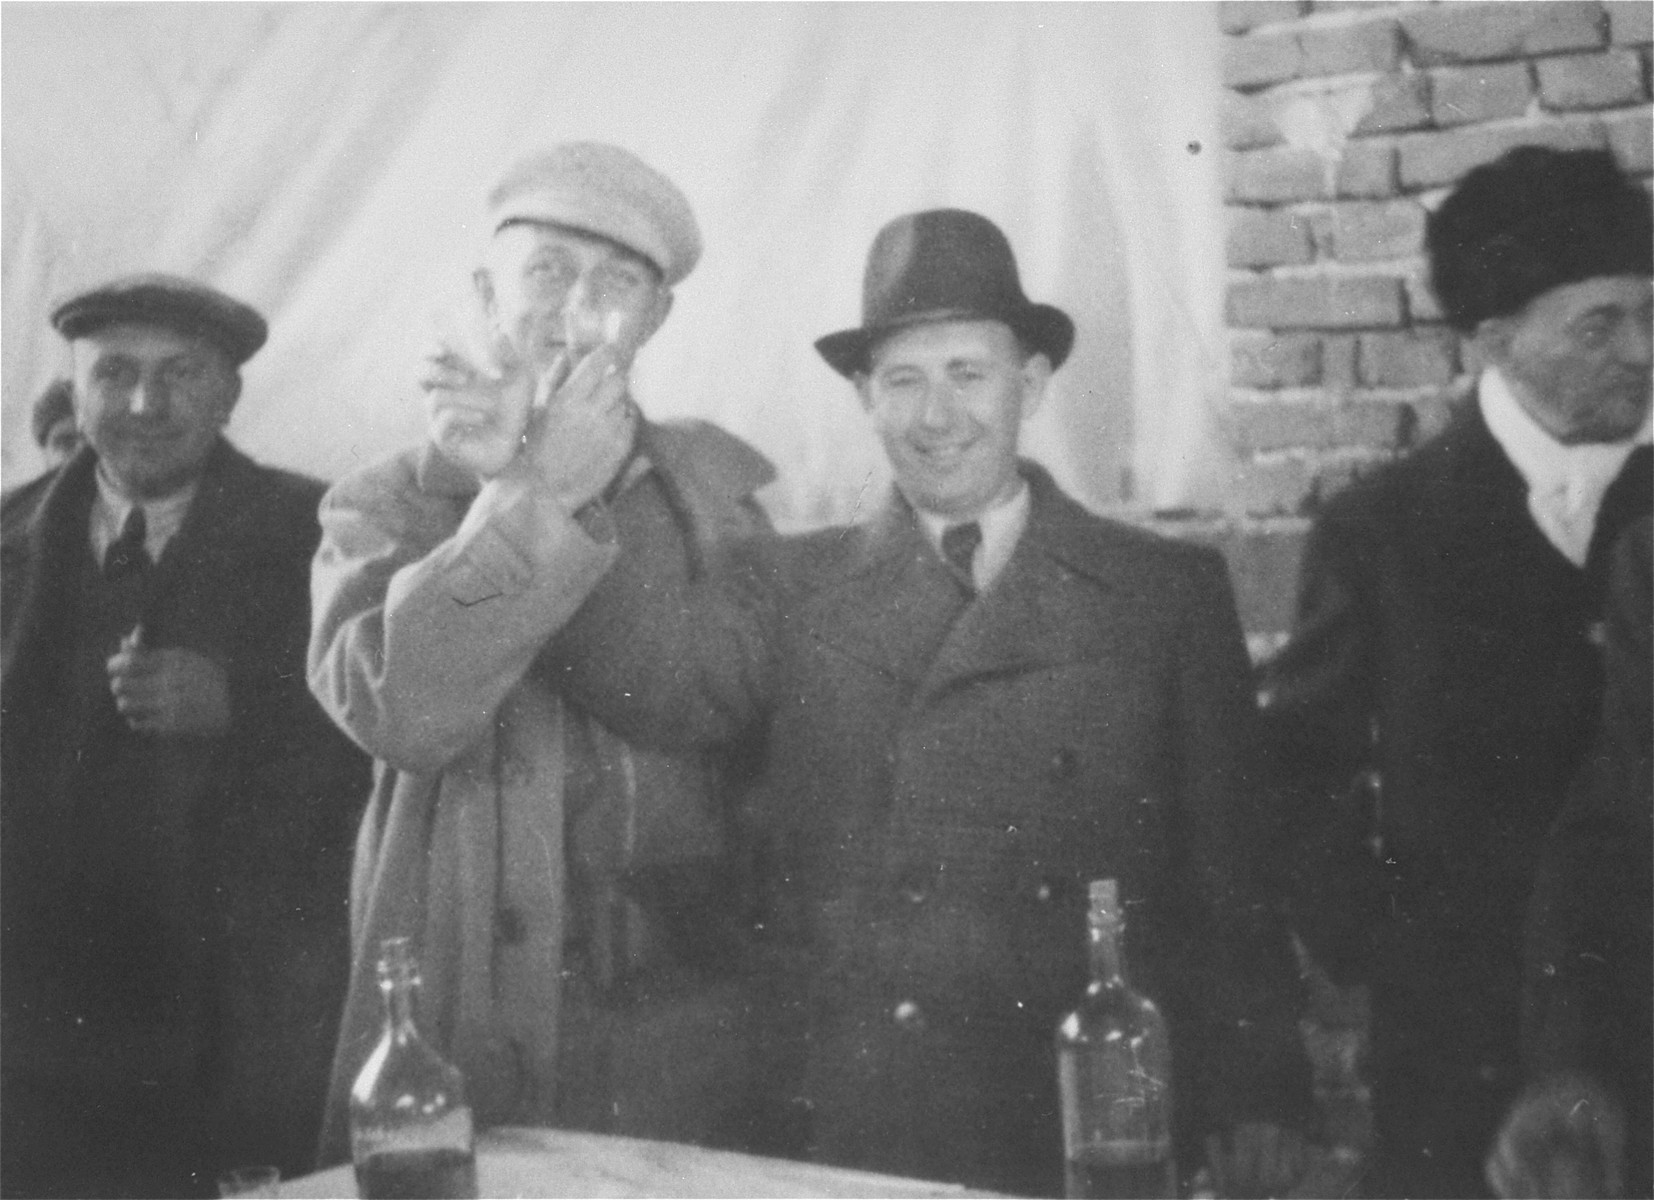 A group of men toast the opening of a new wood manufacturing factory in Gugesti, Romania.  Among those pictured is Beno Kupferman (second from the right).